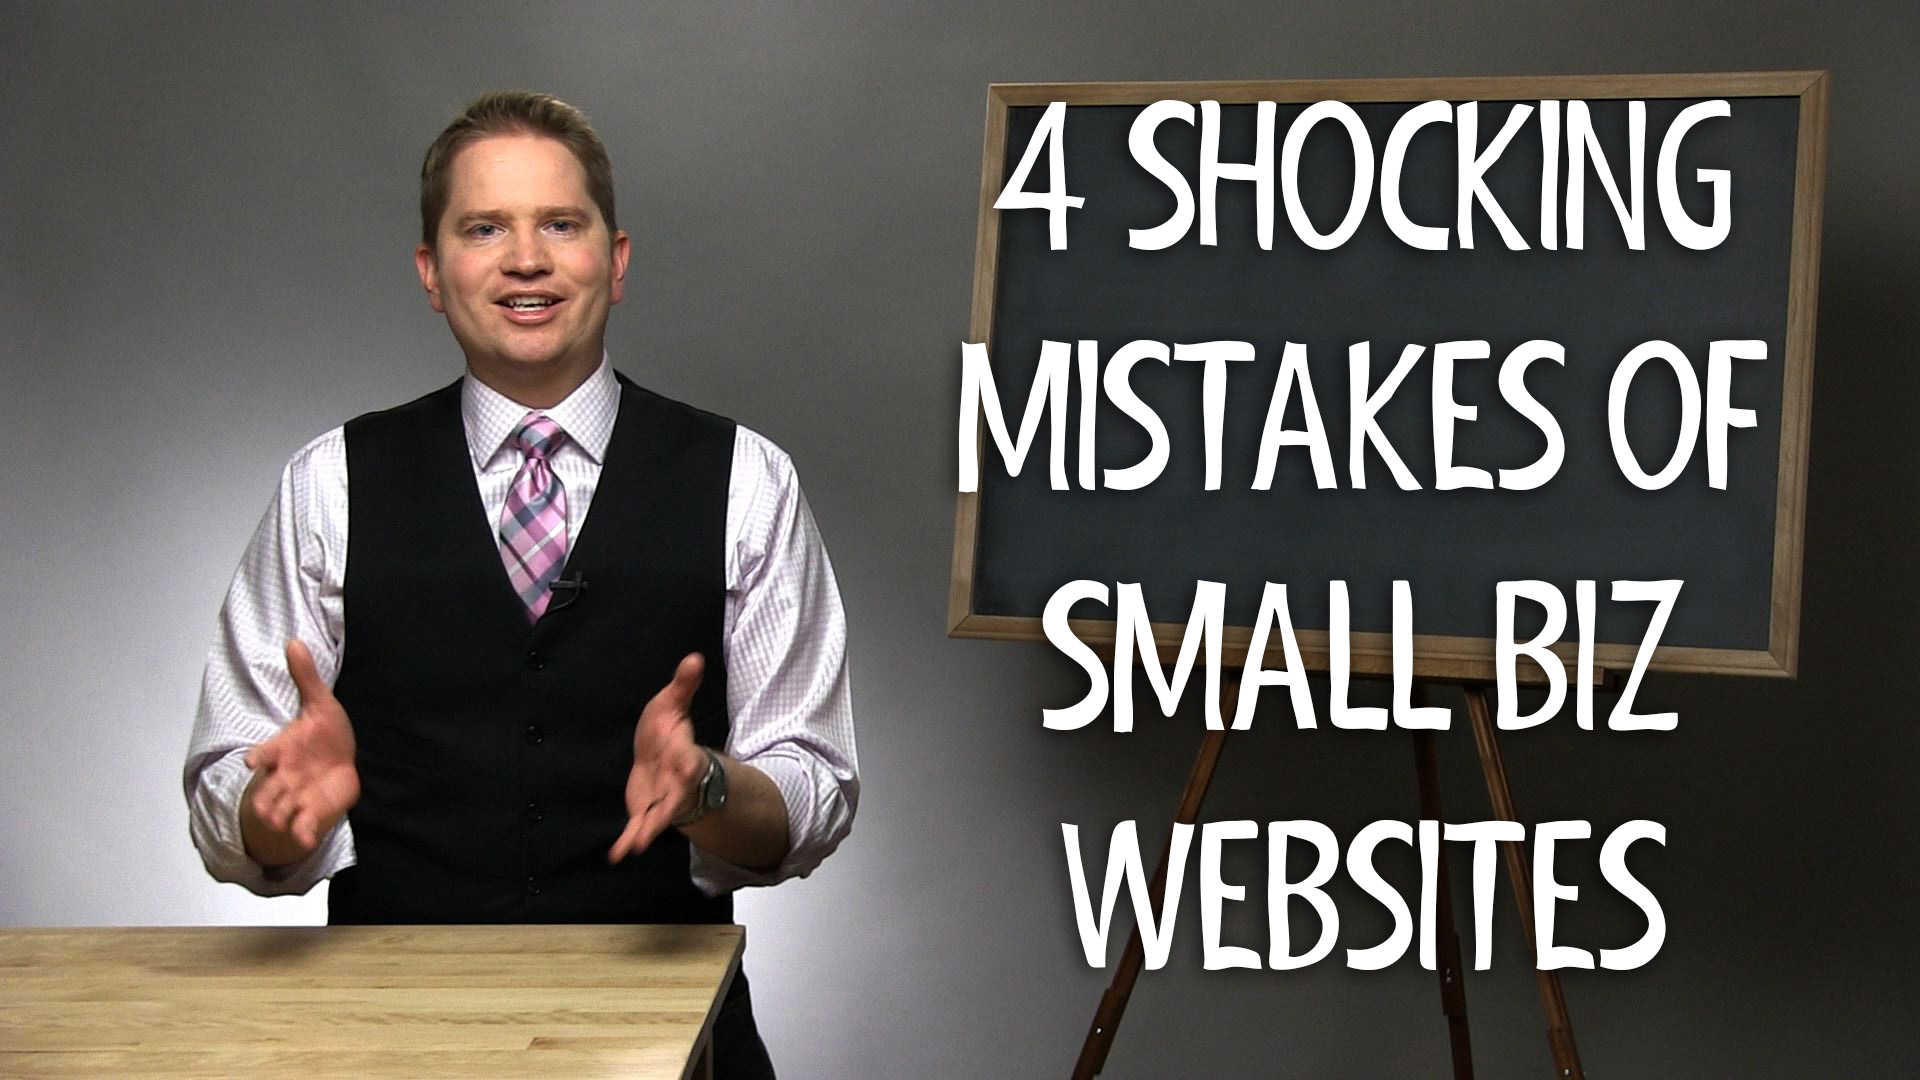 4 Shocking Mistakes of Small Business Websites: Are you missing out on sales?